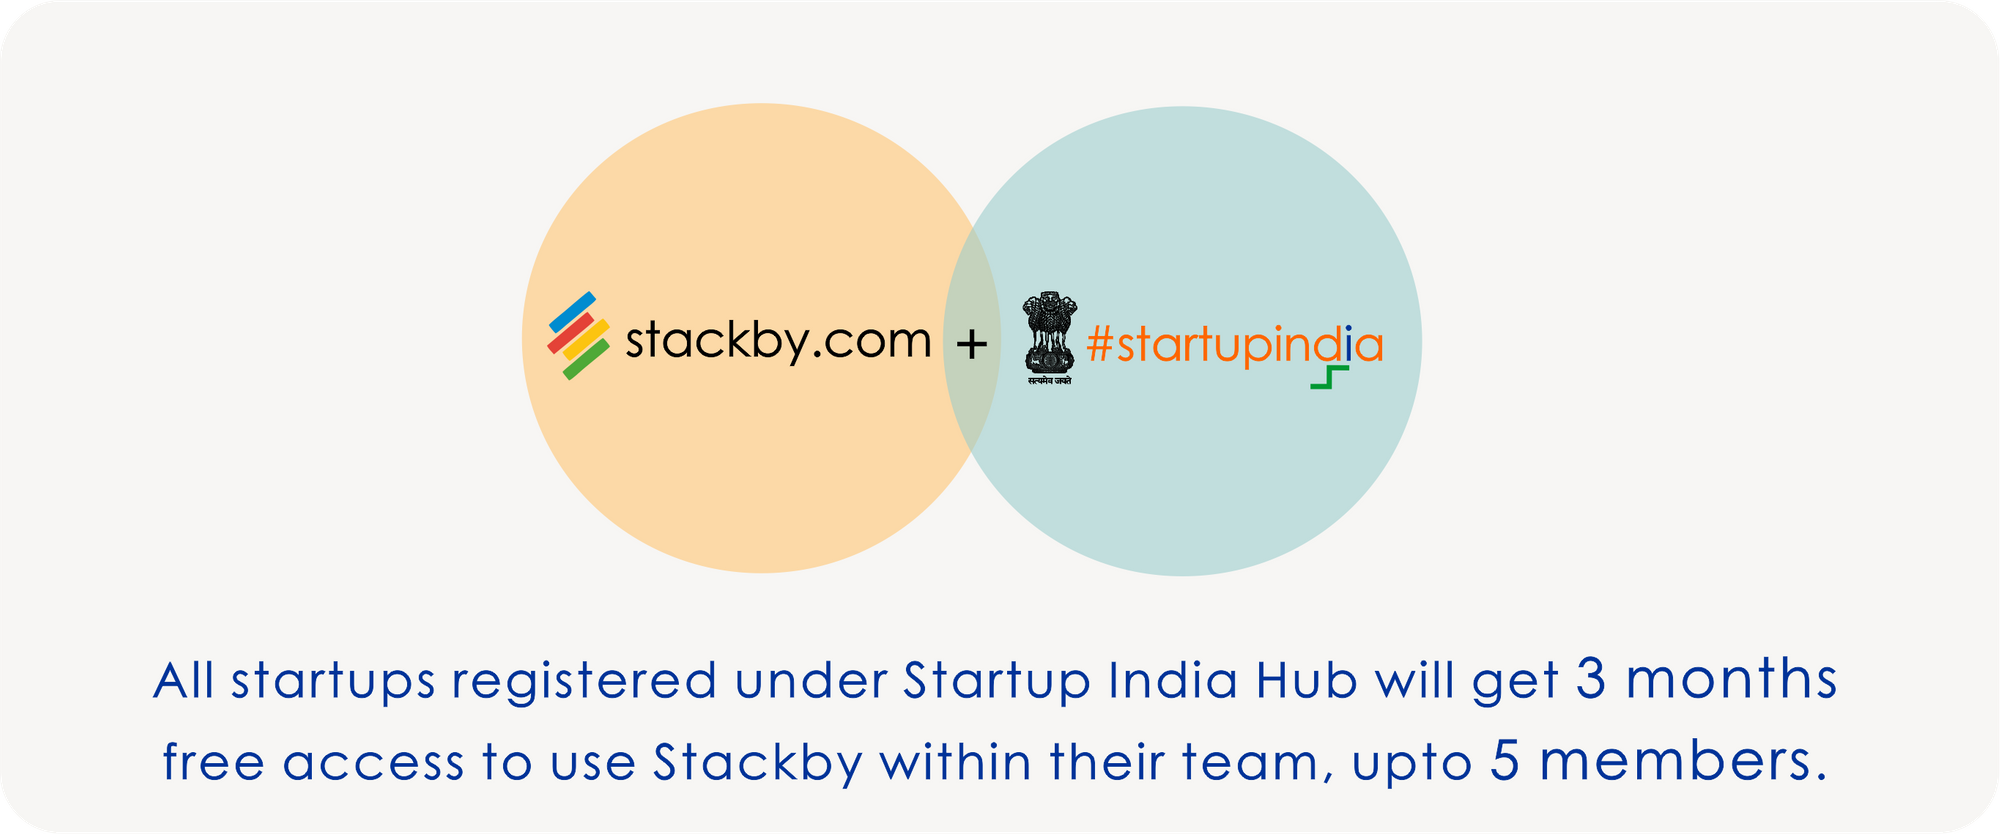 Stackby Partners with Startup India